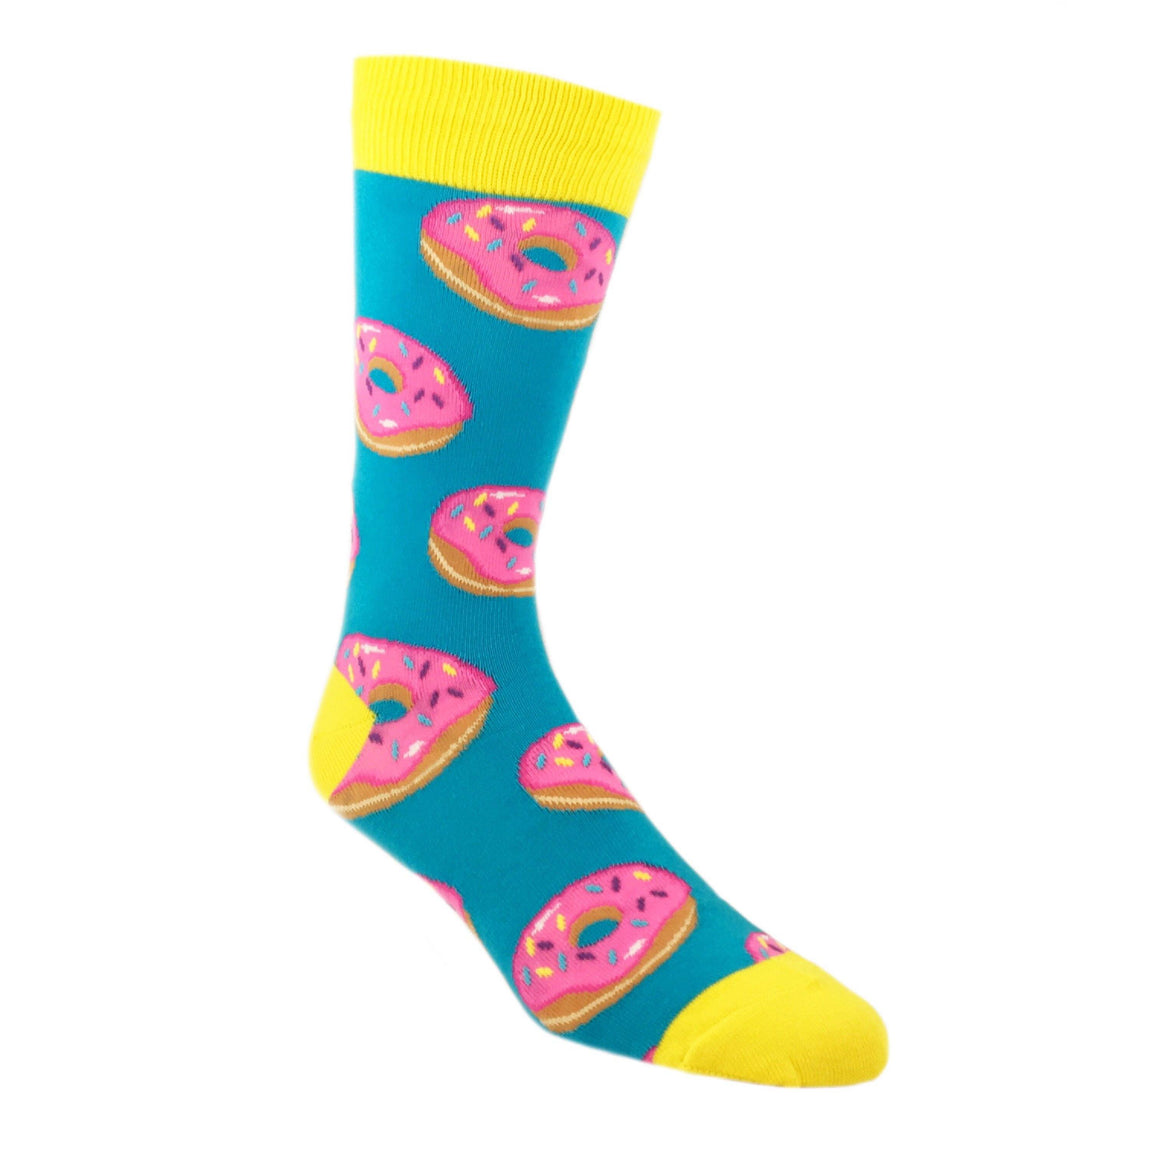 Mmm... Donuts Socks by SockSmith - The Sock Spot